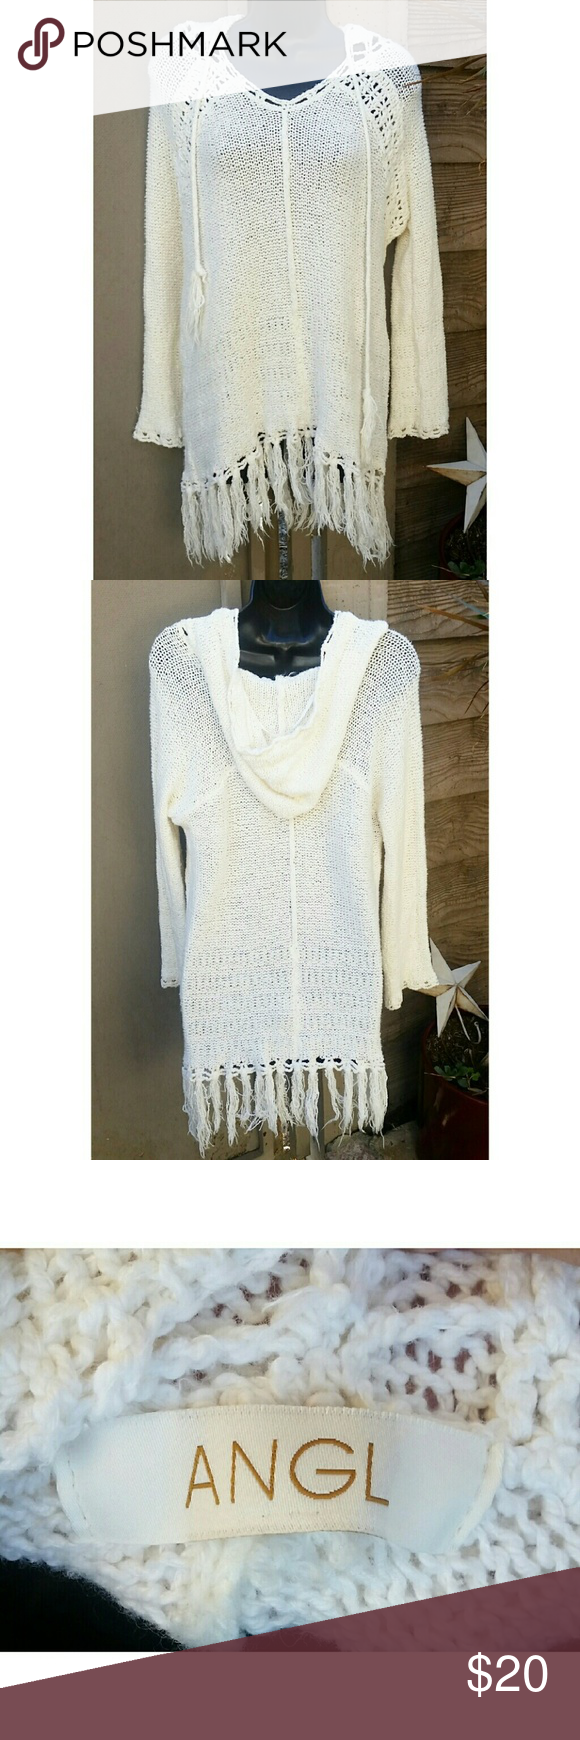 ANGL HIPPIE BOHO IVORY HOODED KNIT SWEATER DRESS Super cute cream colored knitted sweater! Could also be worn as a dress depending on how tall you are! Has a hood on the back and two drawstrings. The bottom is all tassle! Made by ANGL. No size tag but I'd say it's a size medium. Excellent, like new condition. So chic! ANGL Sweaters